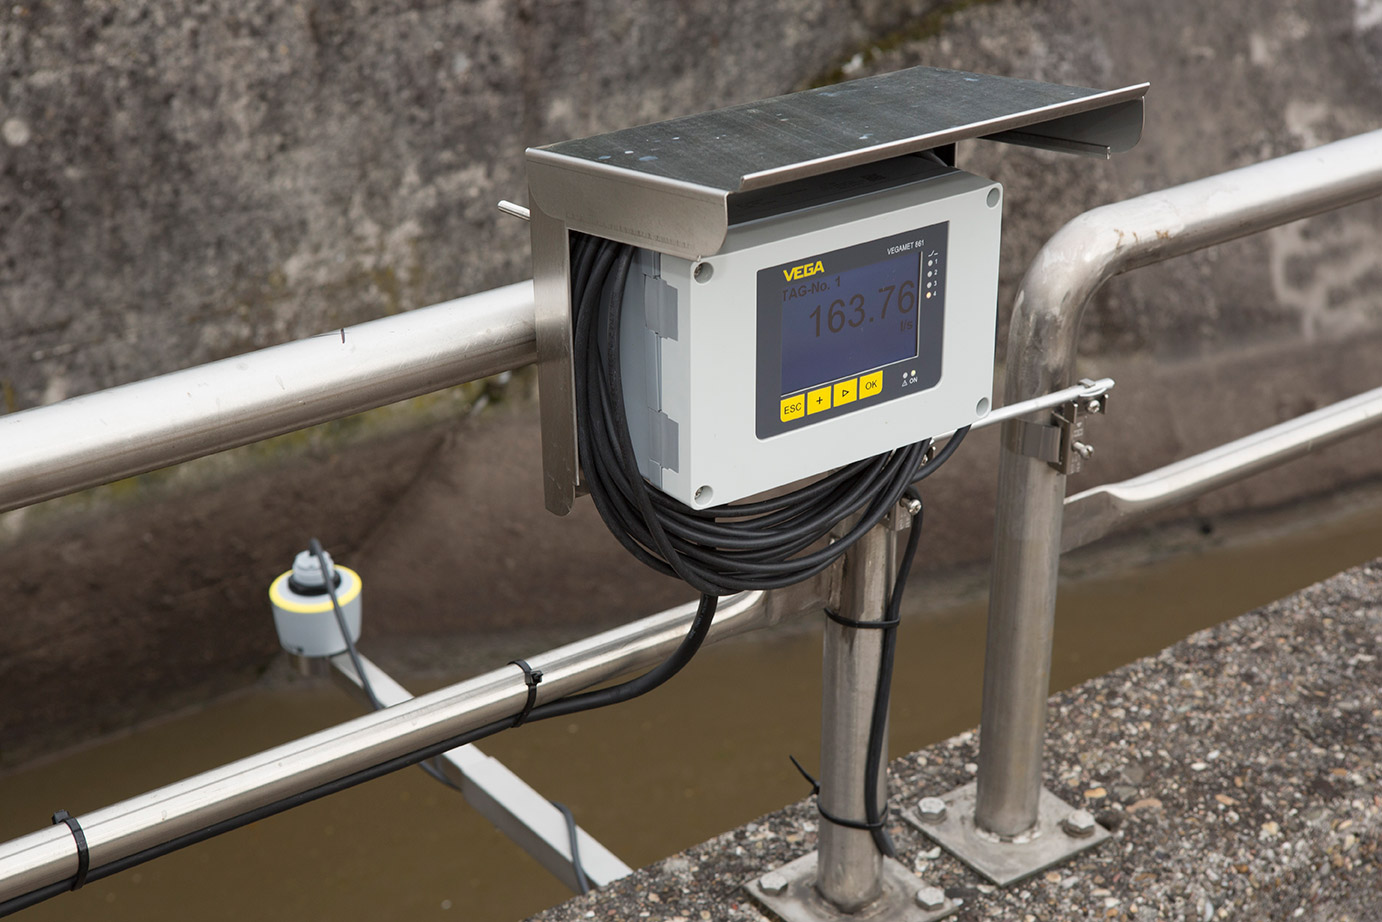 New compact radar level instruments defy buildup to deliver reliable measurement